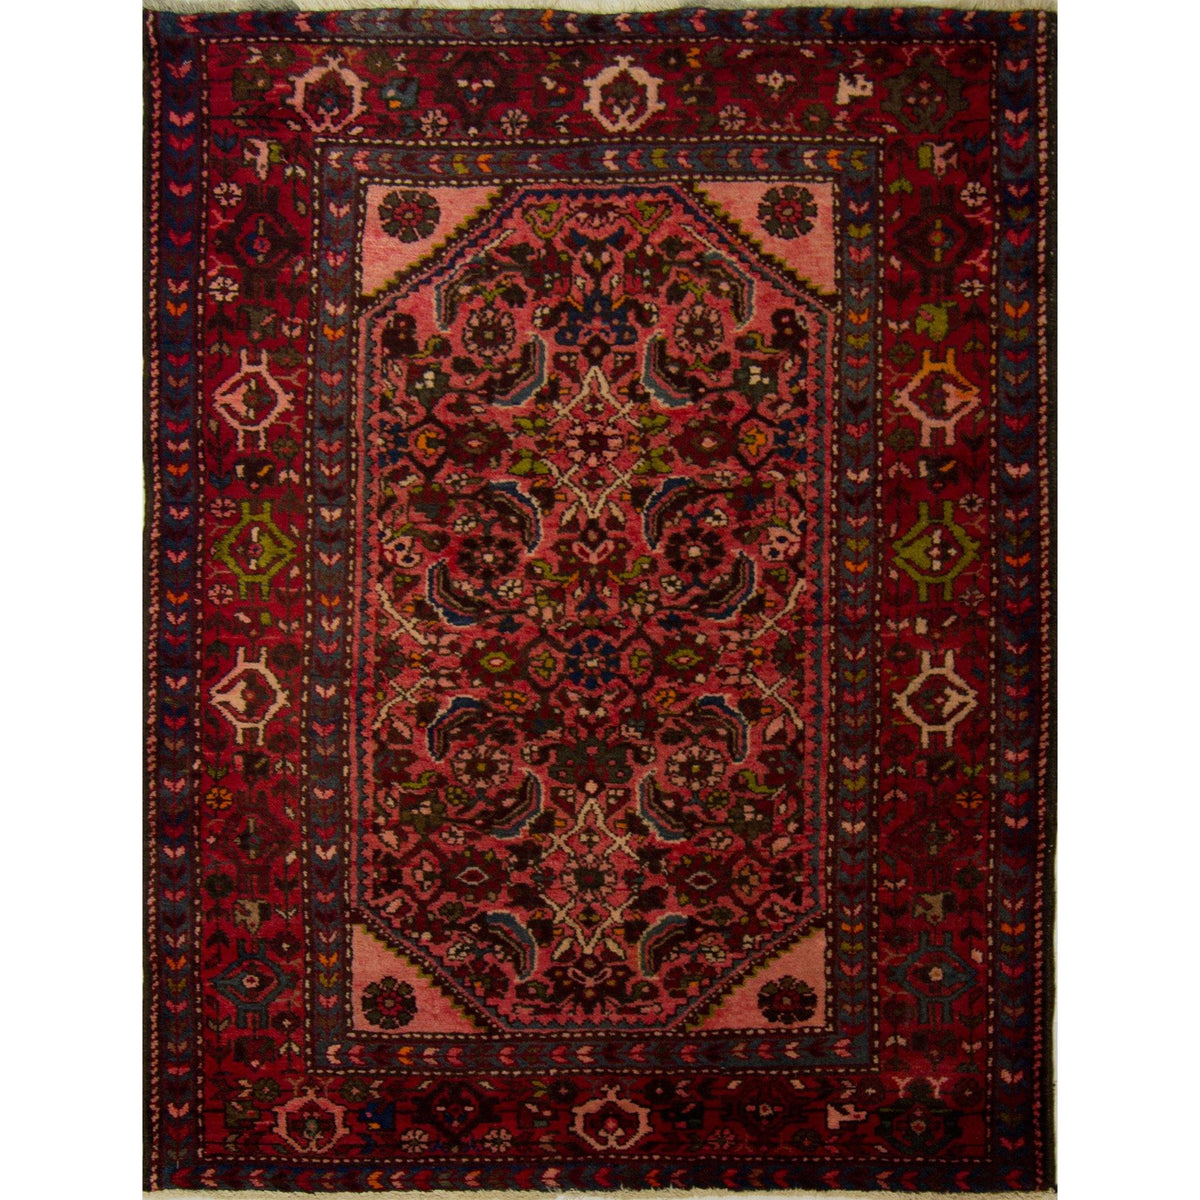 Authentic Persian Hand-knotted Wool Hamadan Rug 107cm x 142cm Persian-Rug | House-of-Haghi | NewMarket | Auckland | NZ | Handmade Persian Rugs | Hand Knotted Persian Rugs